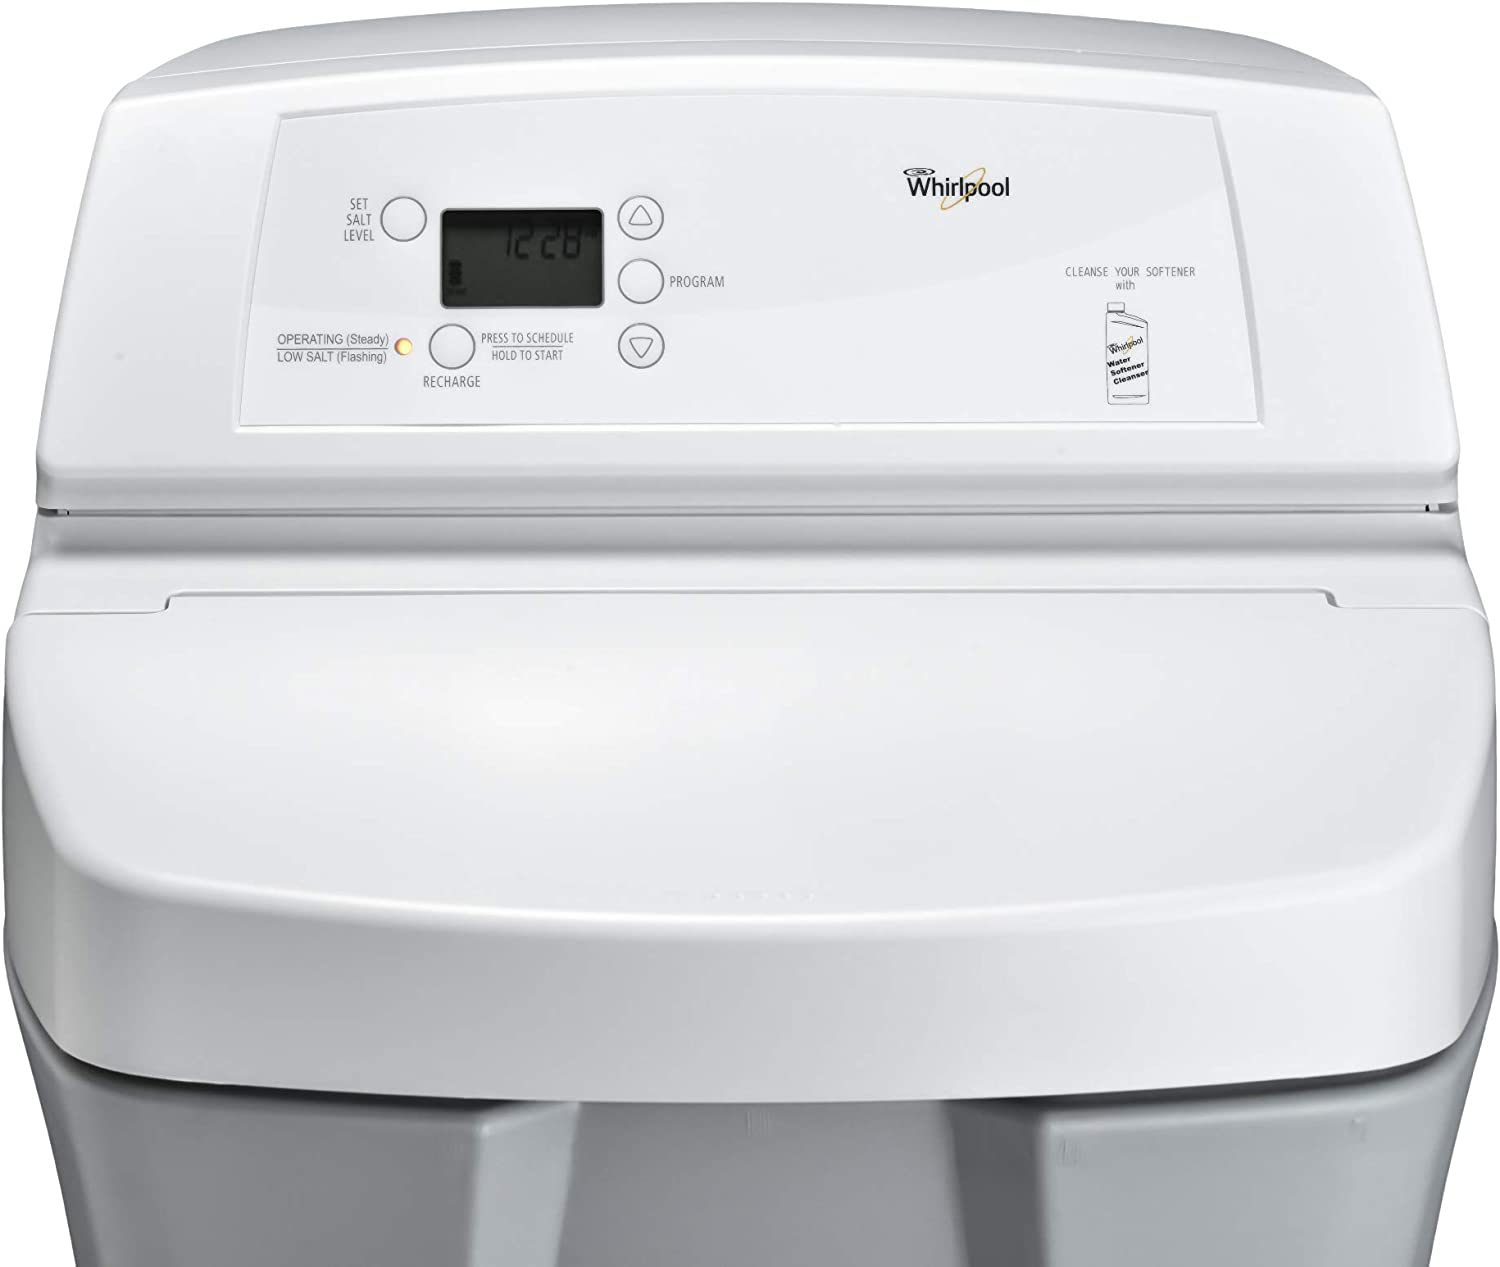 Whirlpool WHES30E 30, 000 Grain Softener | Salt & Water Saving Technology | NSF Certified | Automatic Whole House Soft Water Regeneration, 0.75 inches, Off-White - -